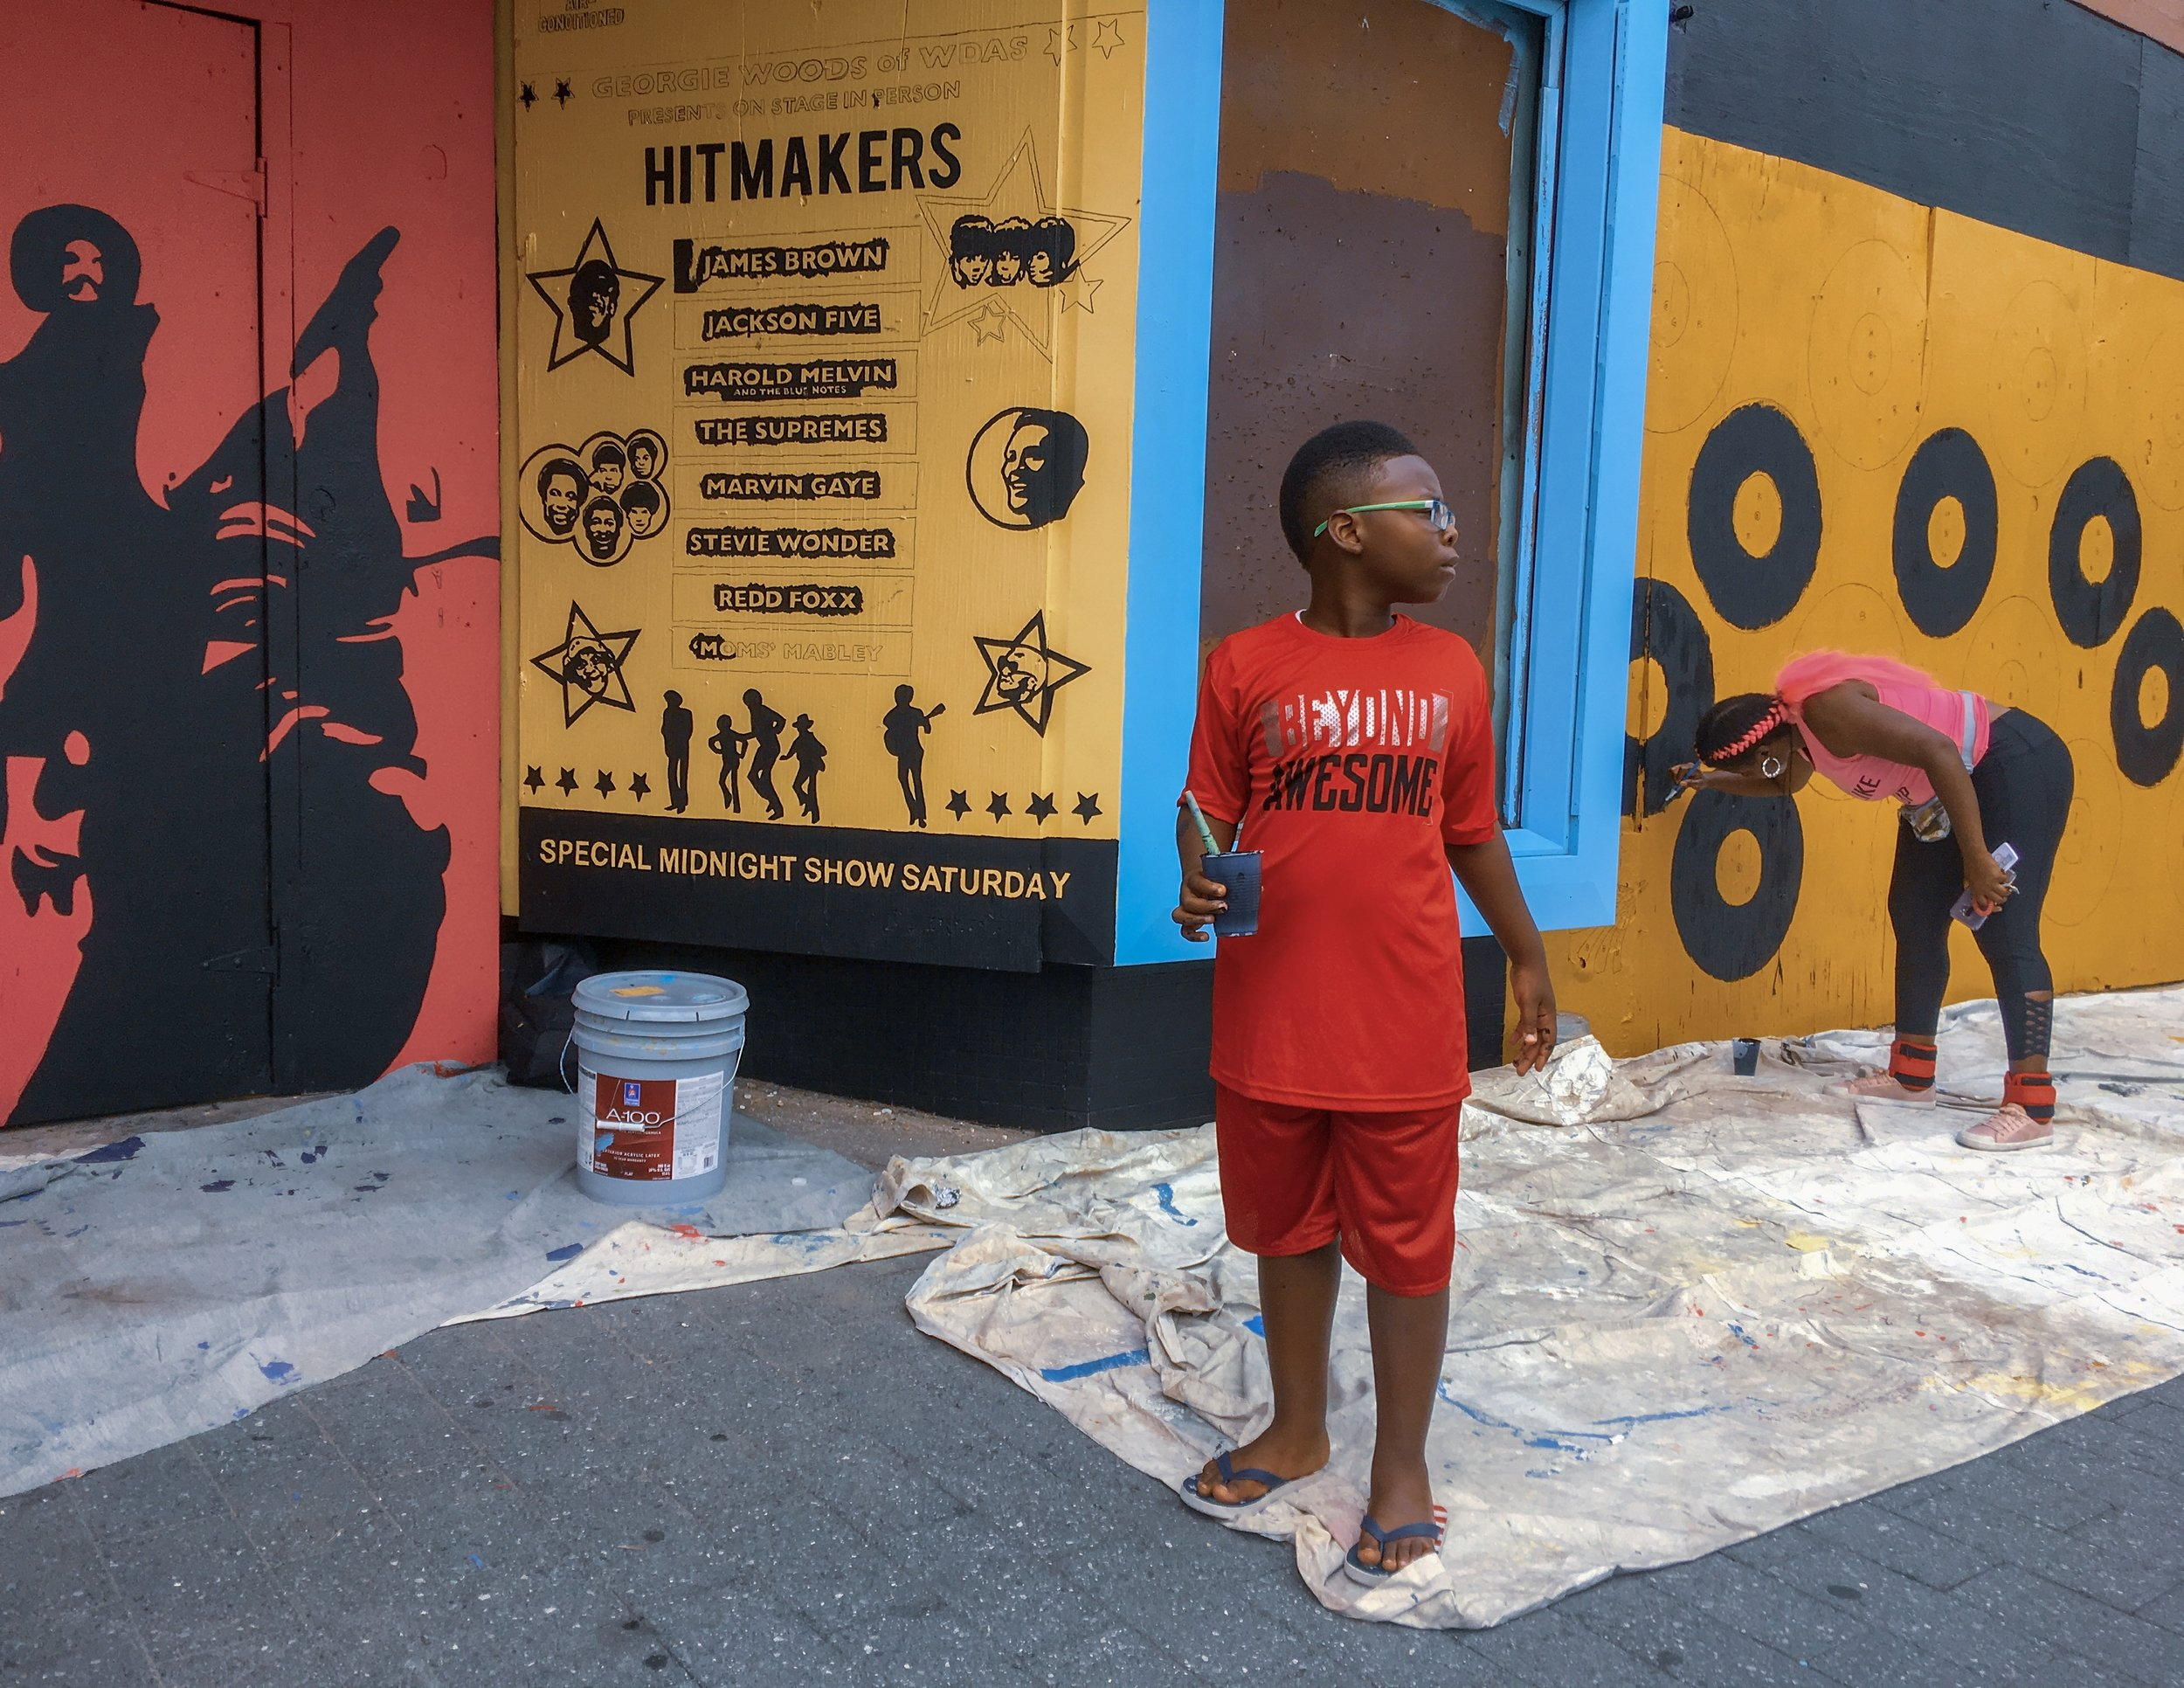 The Mural Arts Program invited the community to join in painting a new mural celebrating the Uptown Theater's golden era as part of the Chitlin Circuit in the 50s, 60s, and 70s.